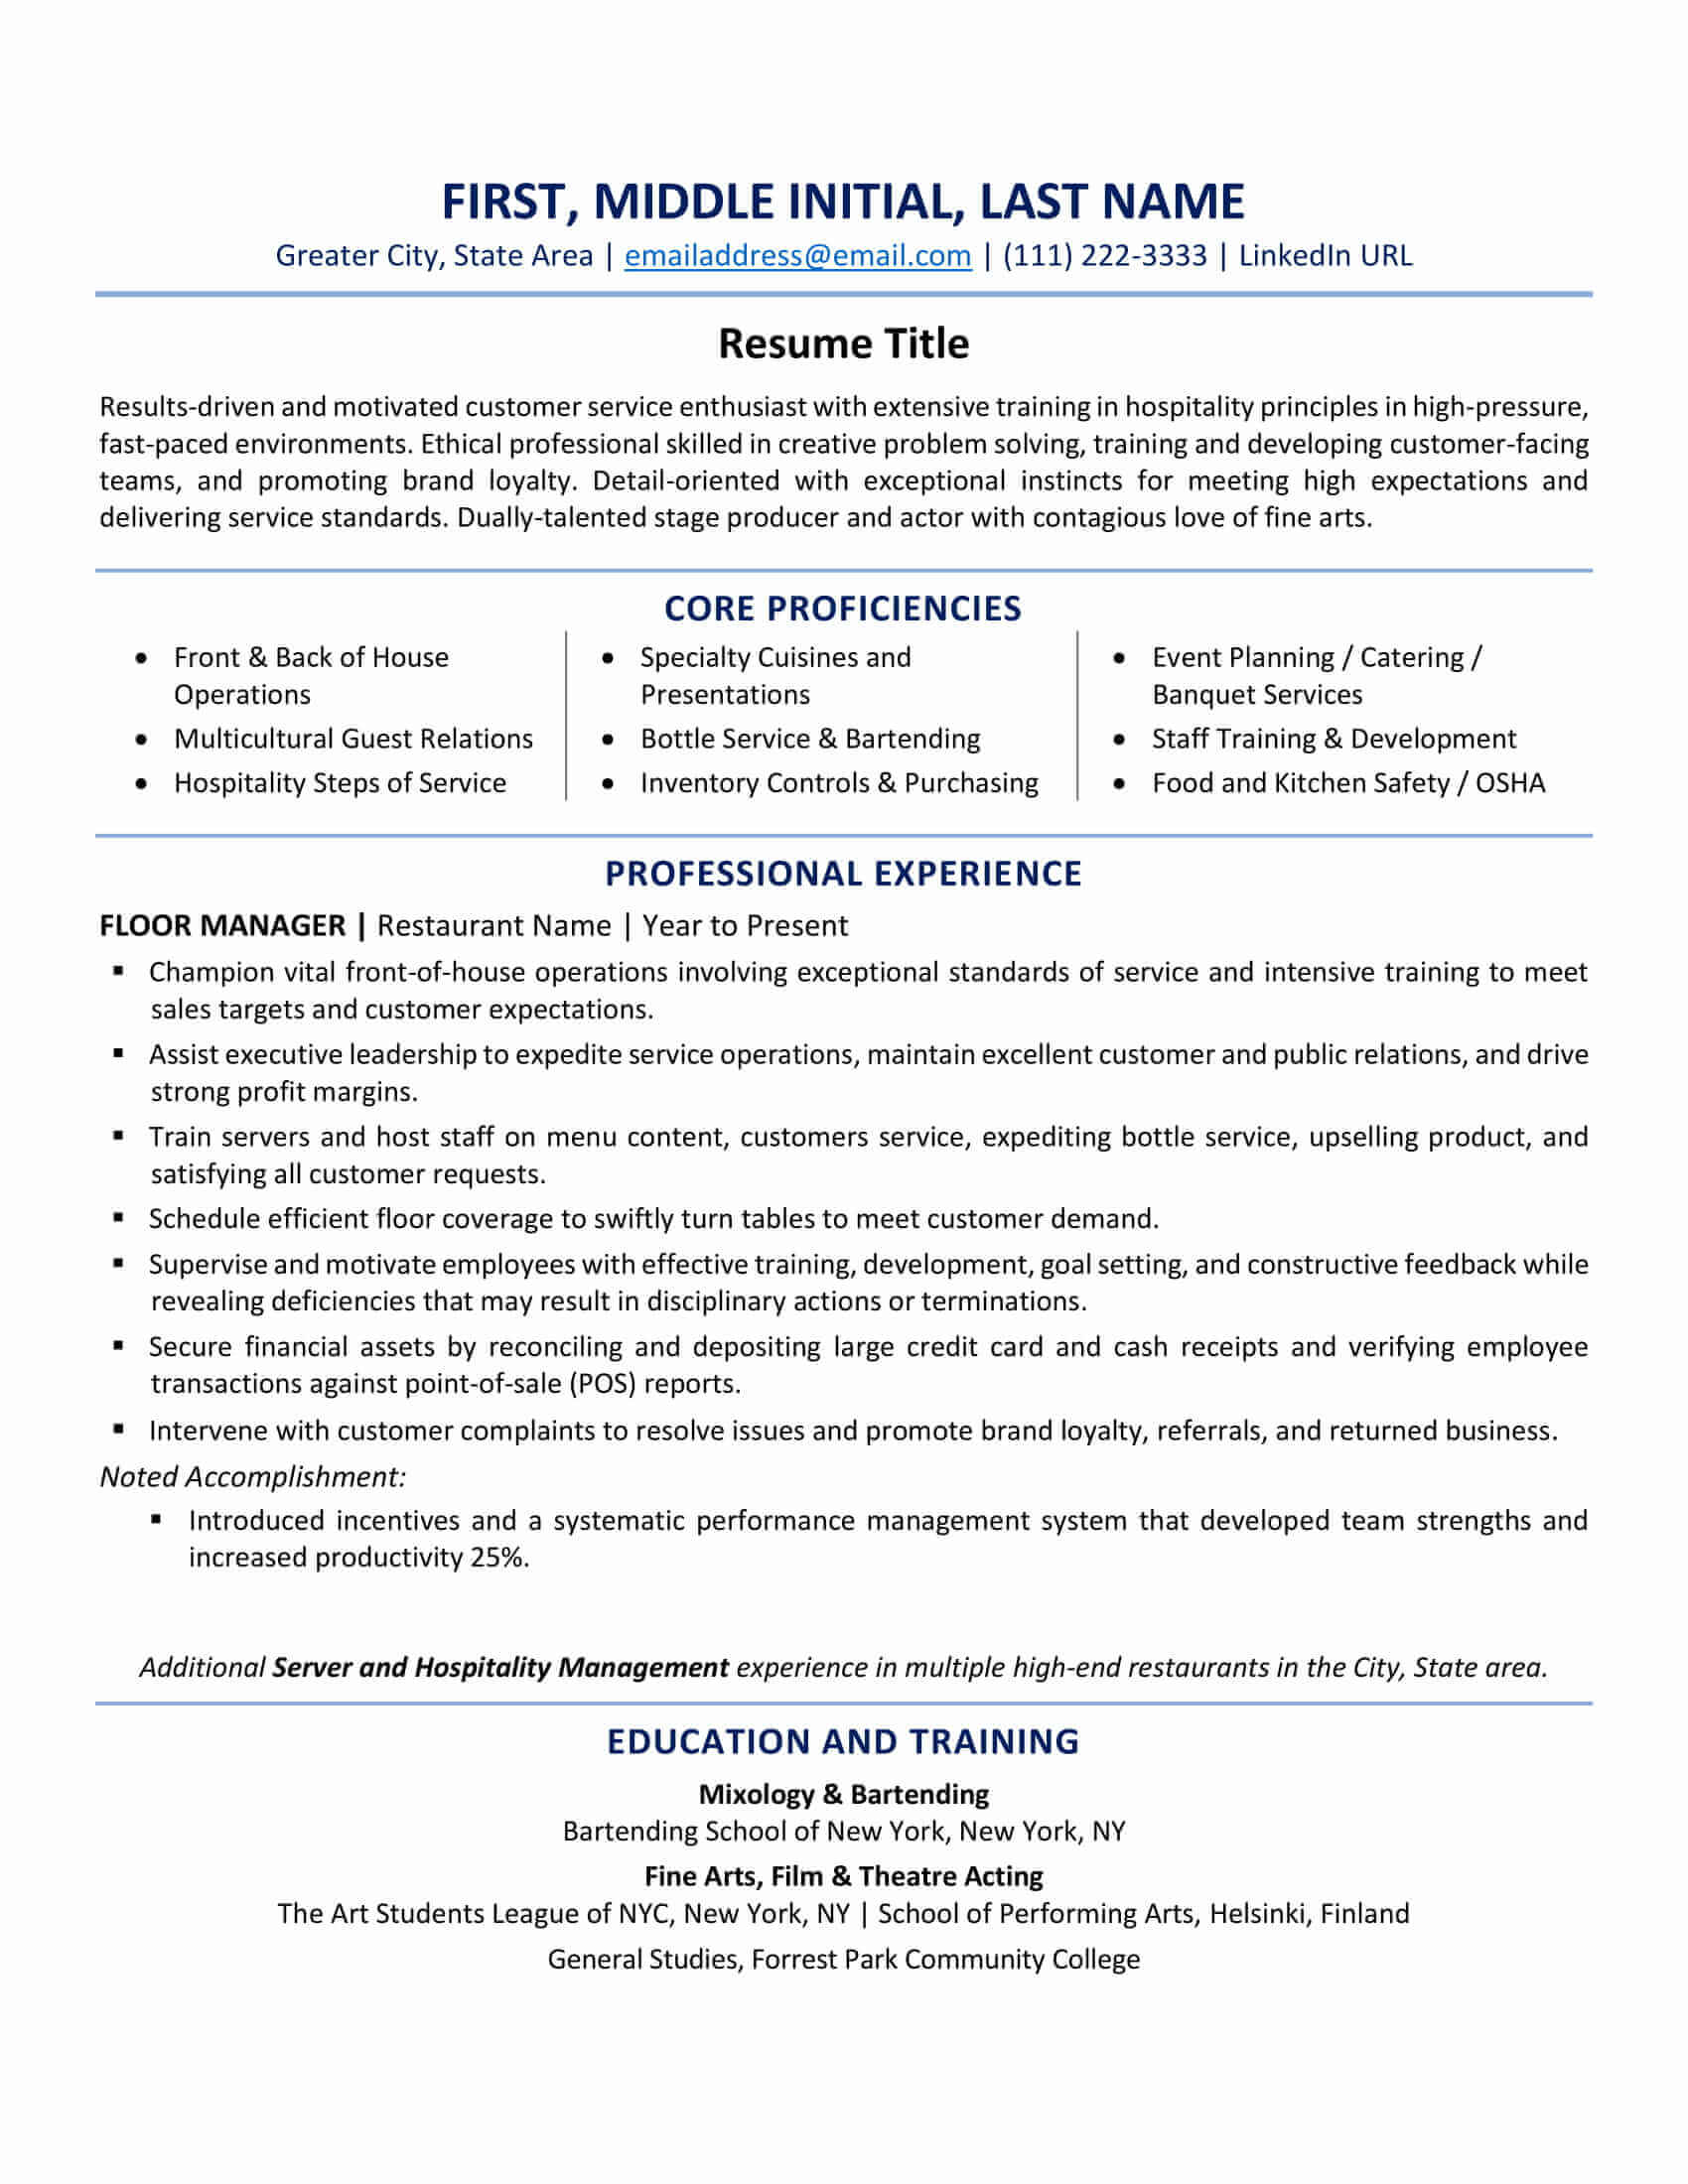 ats resume test free checker formatting examples applicant tracking system check when Resume Applicant Tracking System Resume Check